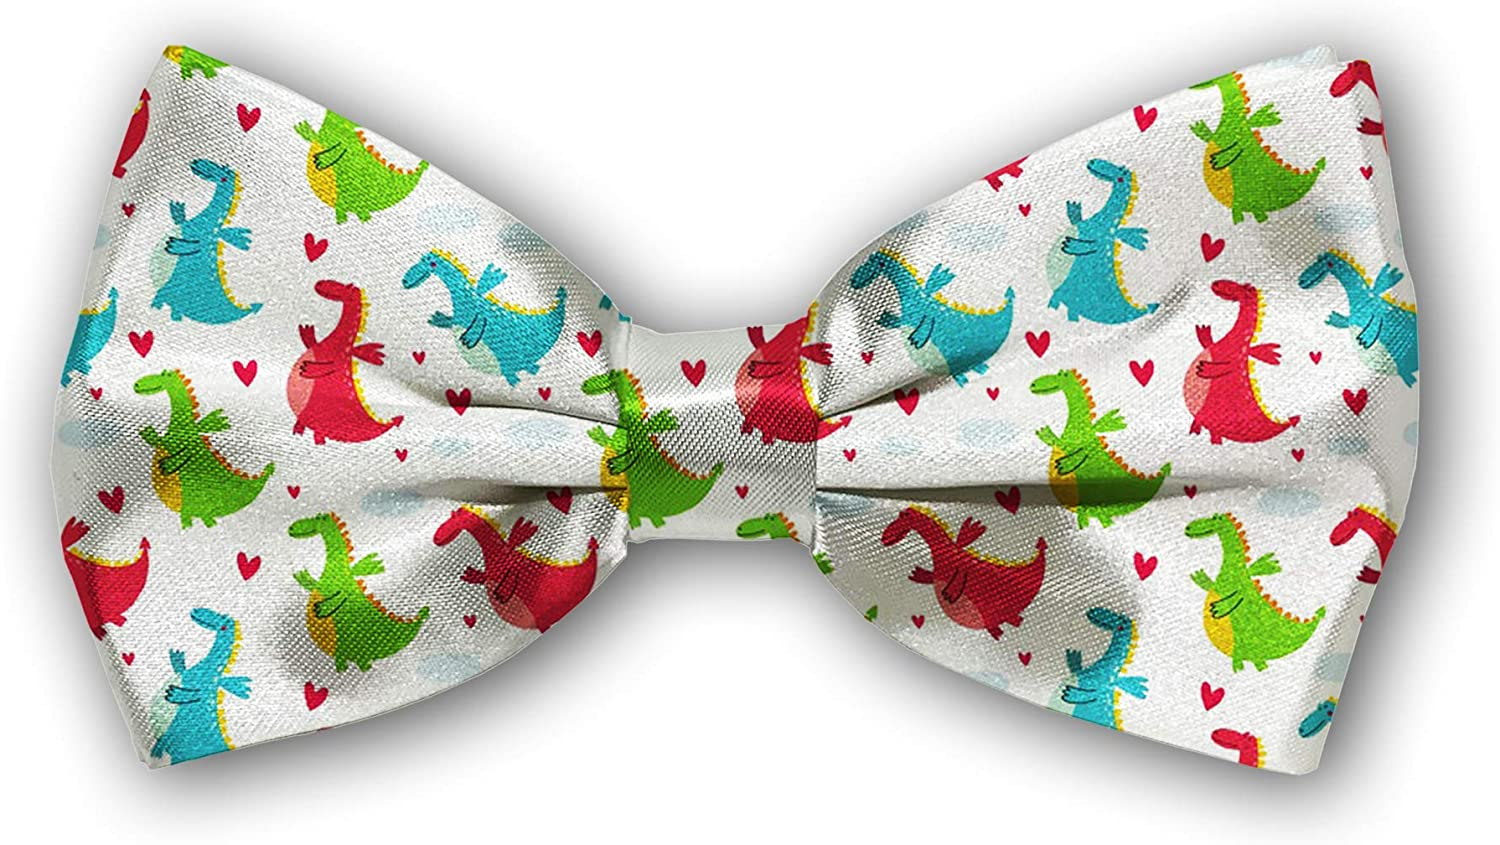 Bow excellence Tie Tuxedo Butterfly Cotton Adjustable Boys Free shipping Bowtie Mens for